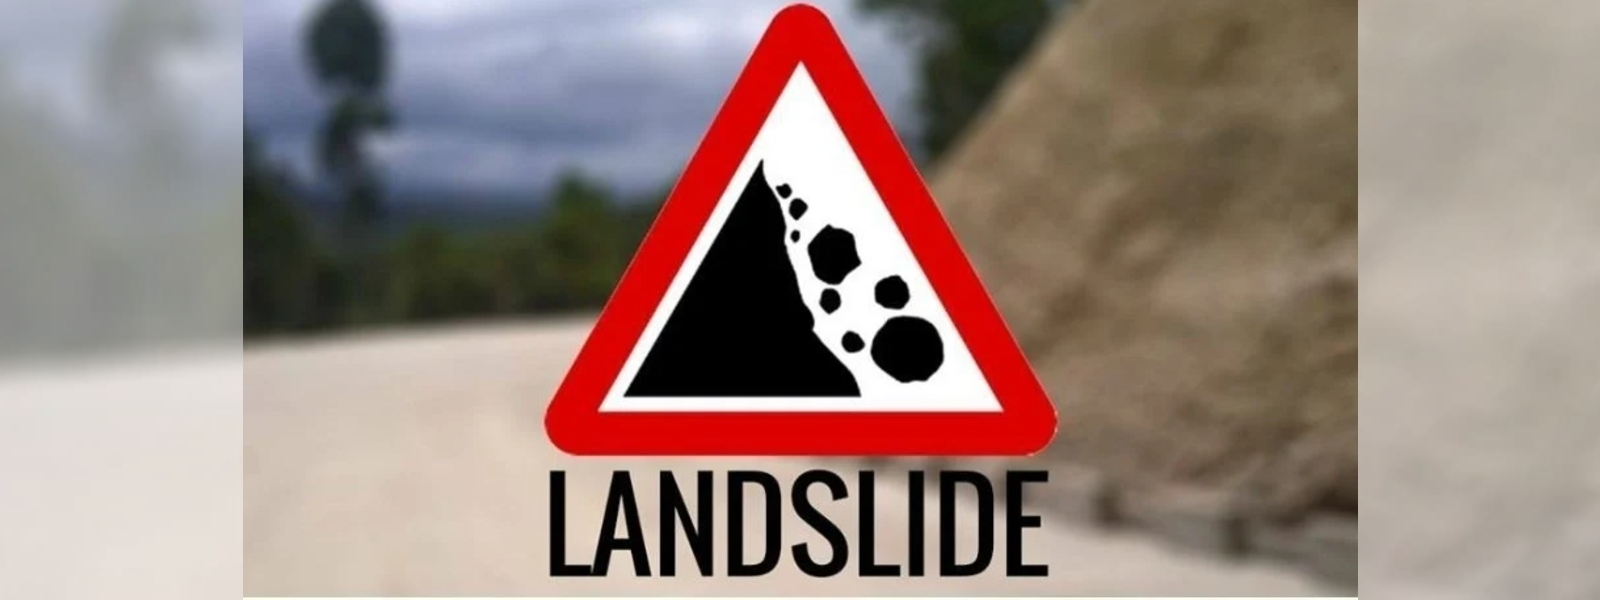 NBRO issues Early Landslide Warning